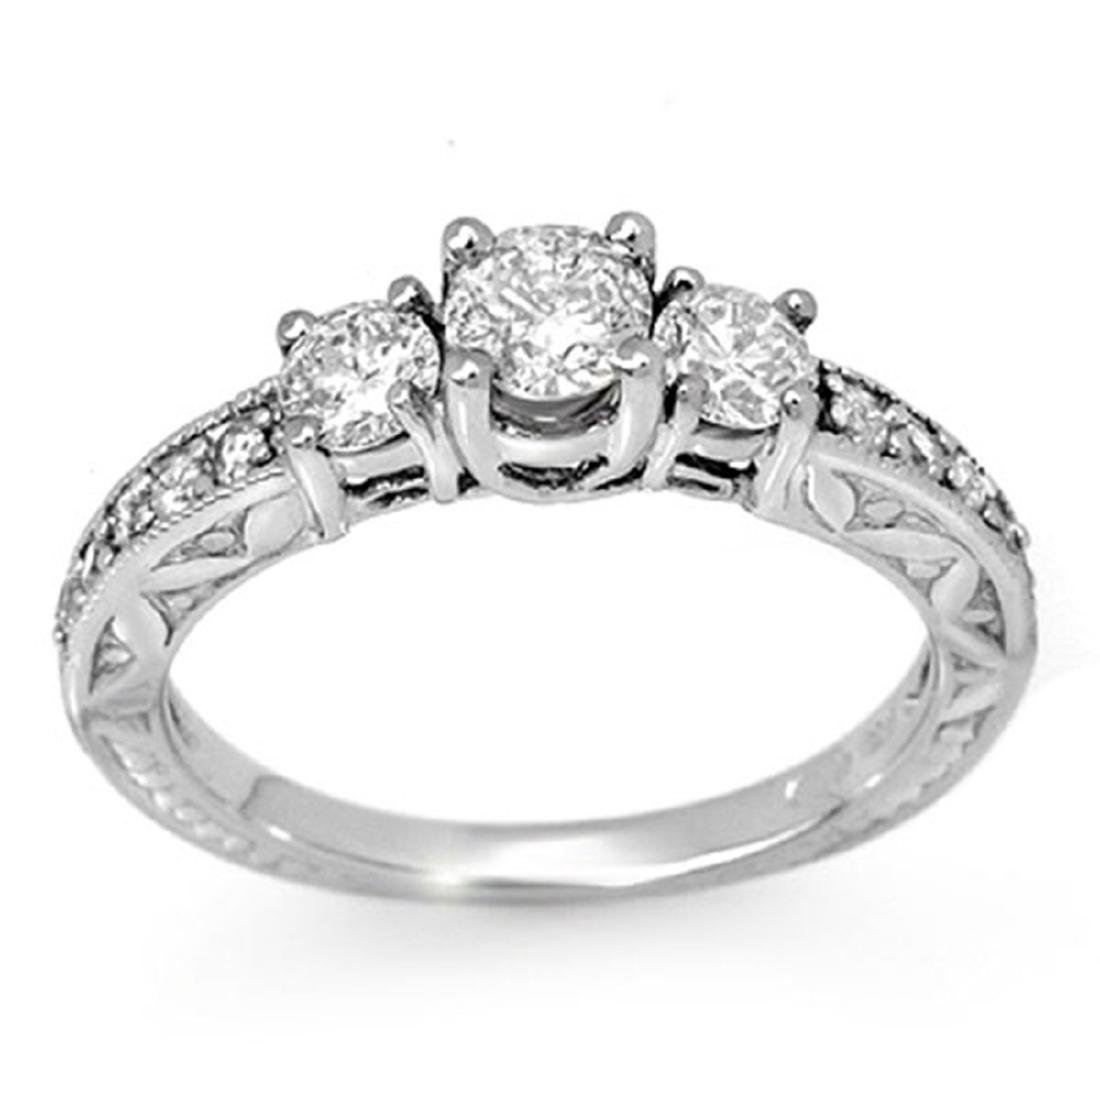 0.95 ctw VS/SI Diamond Ring 18K White Gold - REF-123F6N